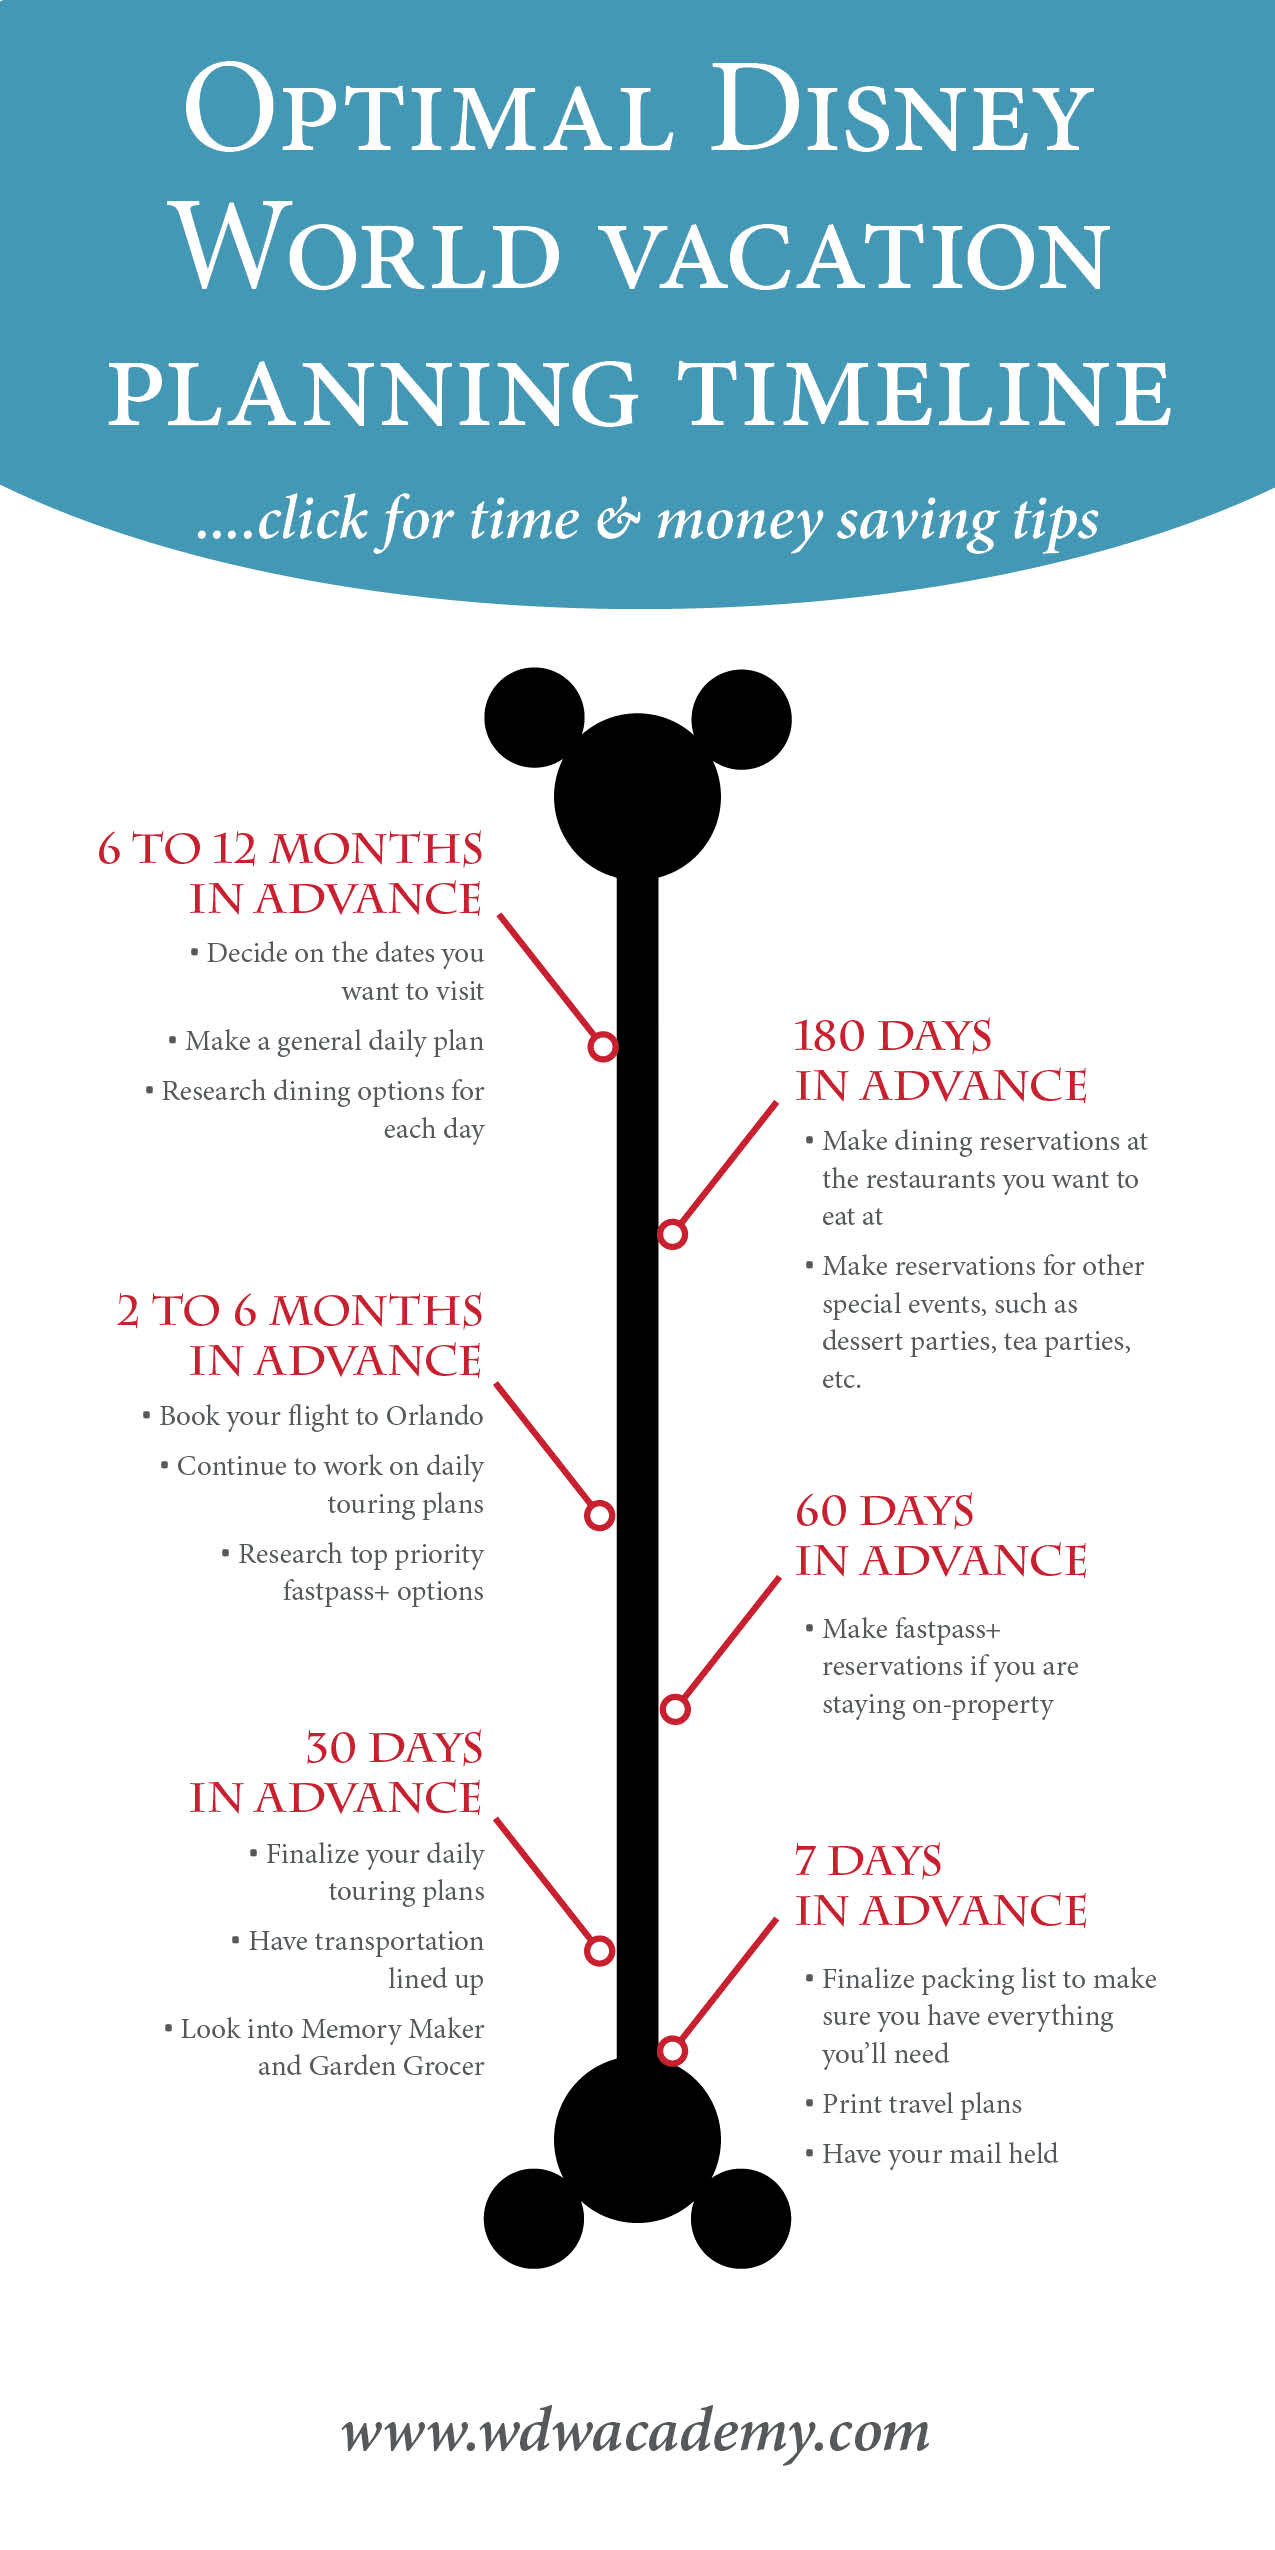 Disney World Vacation Planning Timeline with Time & Money